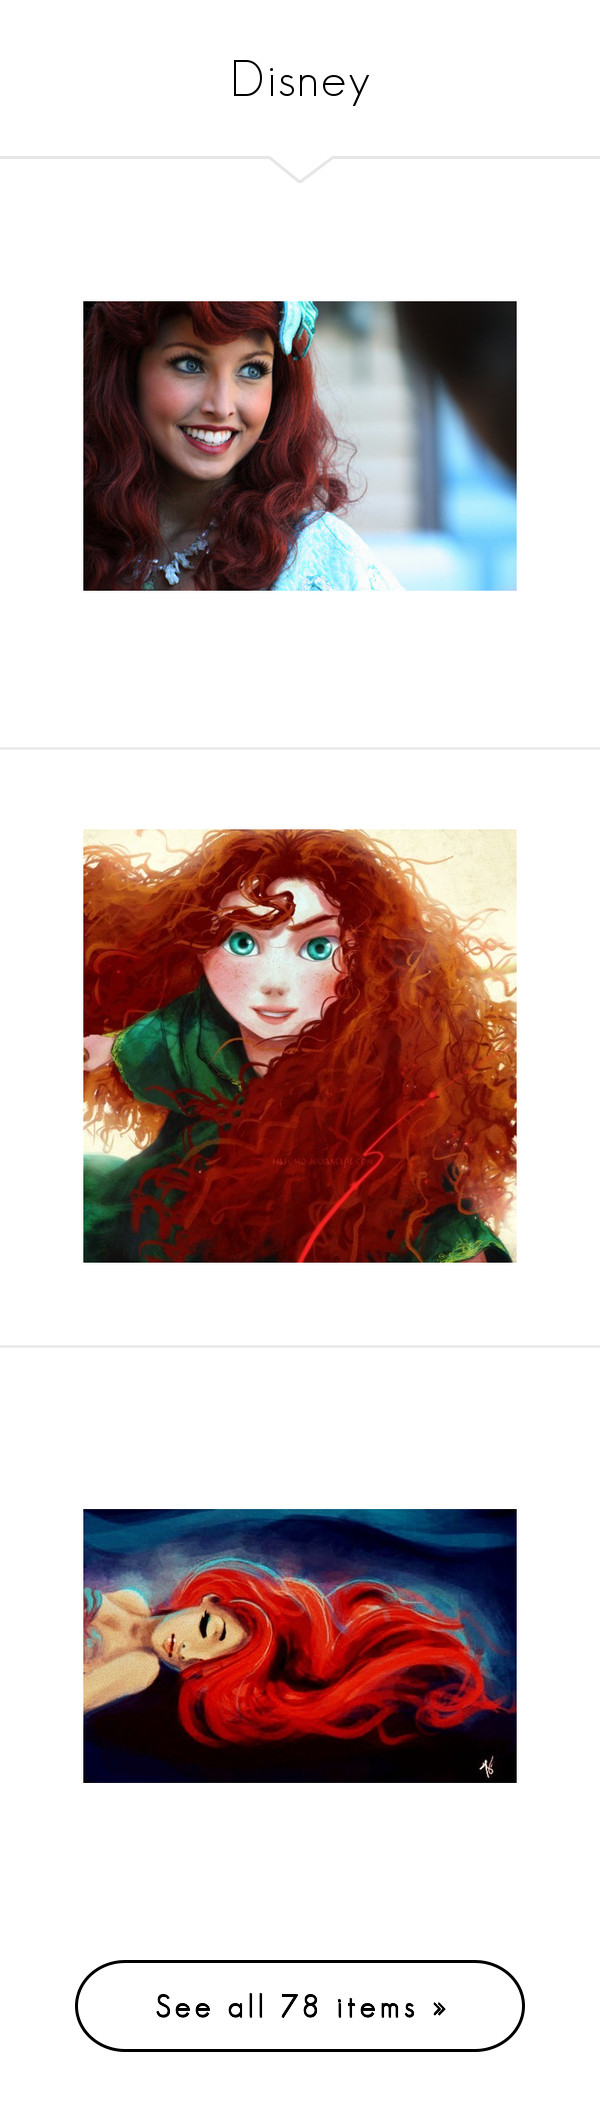 """""""Disney"""" by ukari ❤ liked on Polyvore featuring disney, pictures, people, ariel, the little mermaid, brave, merida, drawings, art and drawing"""